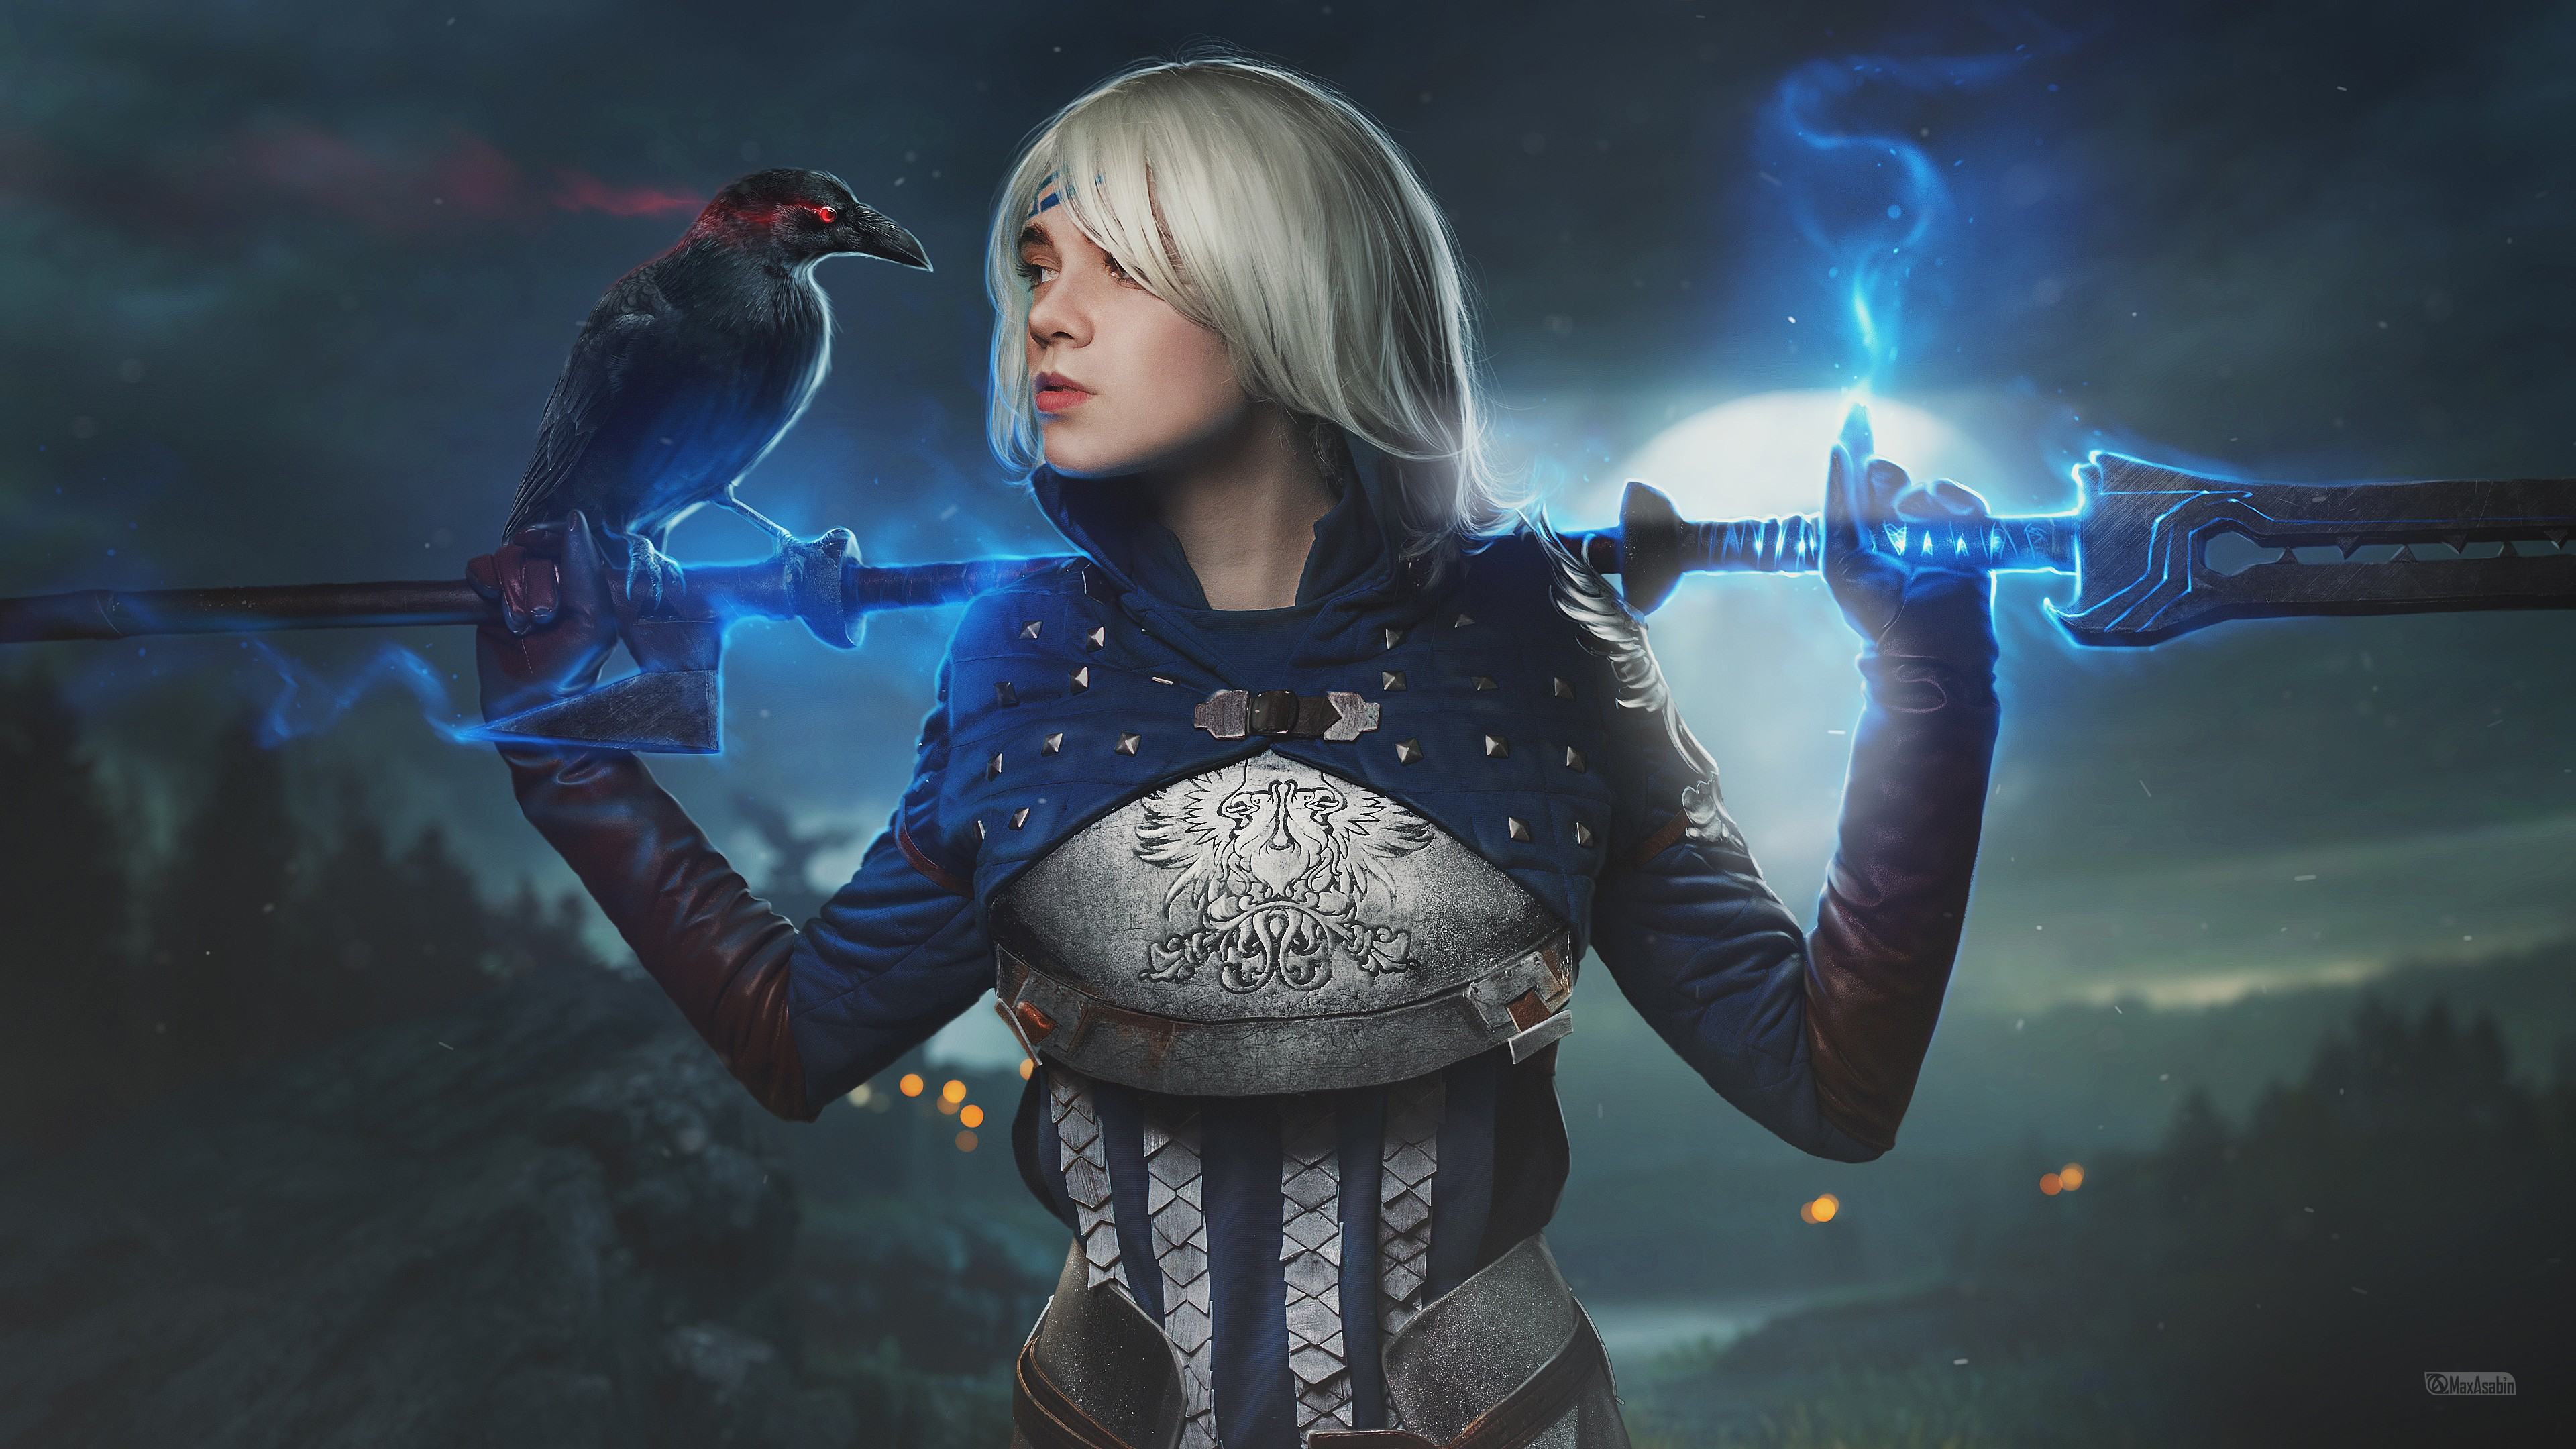 Hd Wallpapers Wallpaper Cosplay Anime Dragon Age Grey Warden